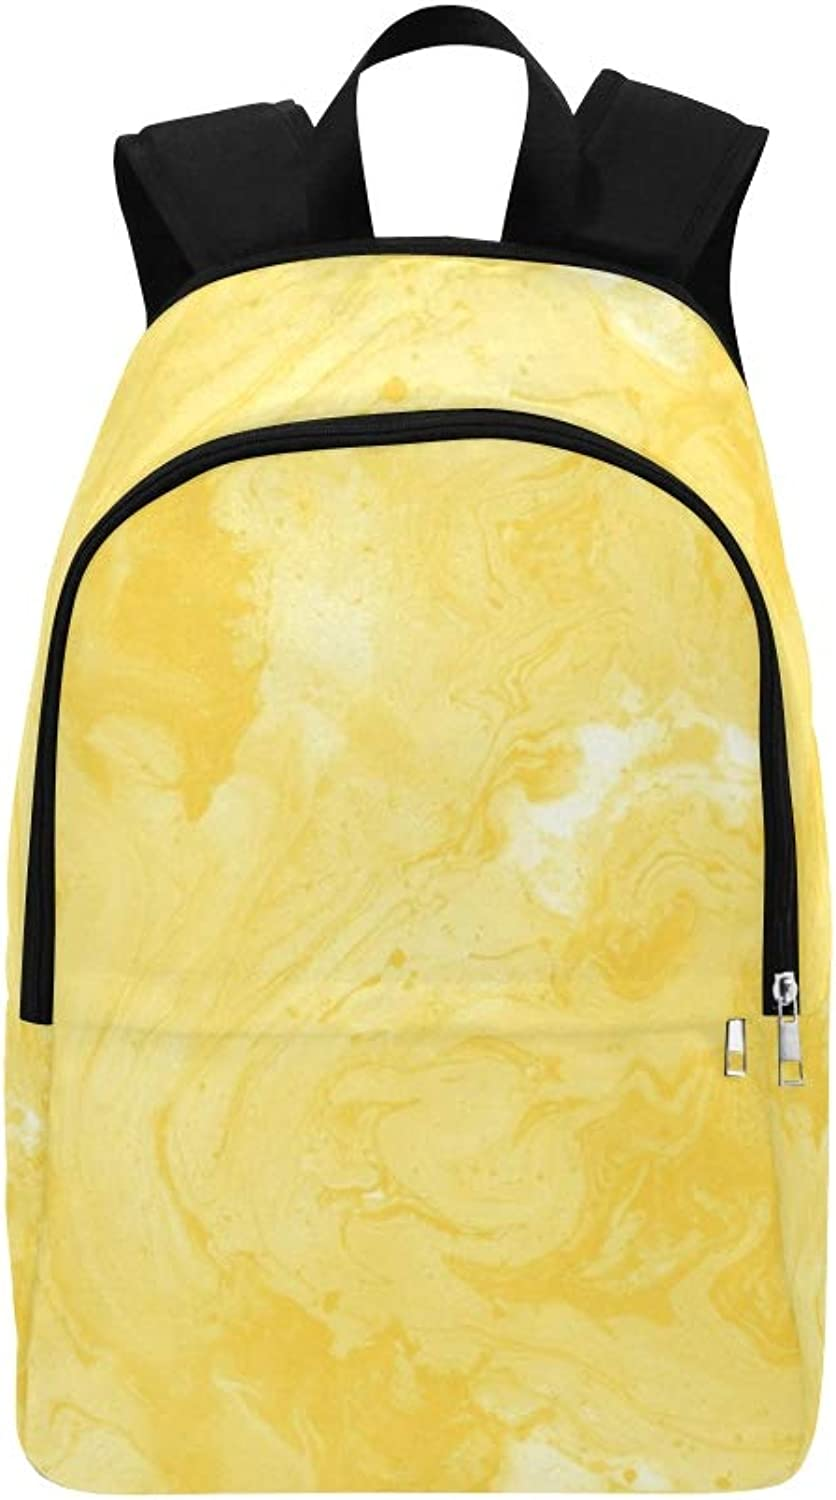 Decorative Marble Texture Yellow Colour Abstract Casual Daypack Travel Bag College School Backpack for Mens and Women